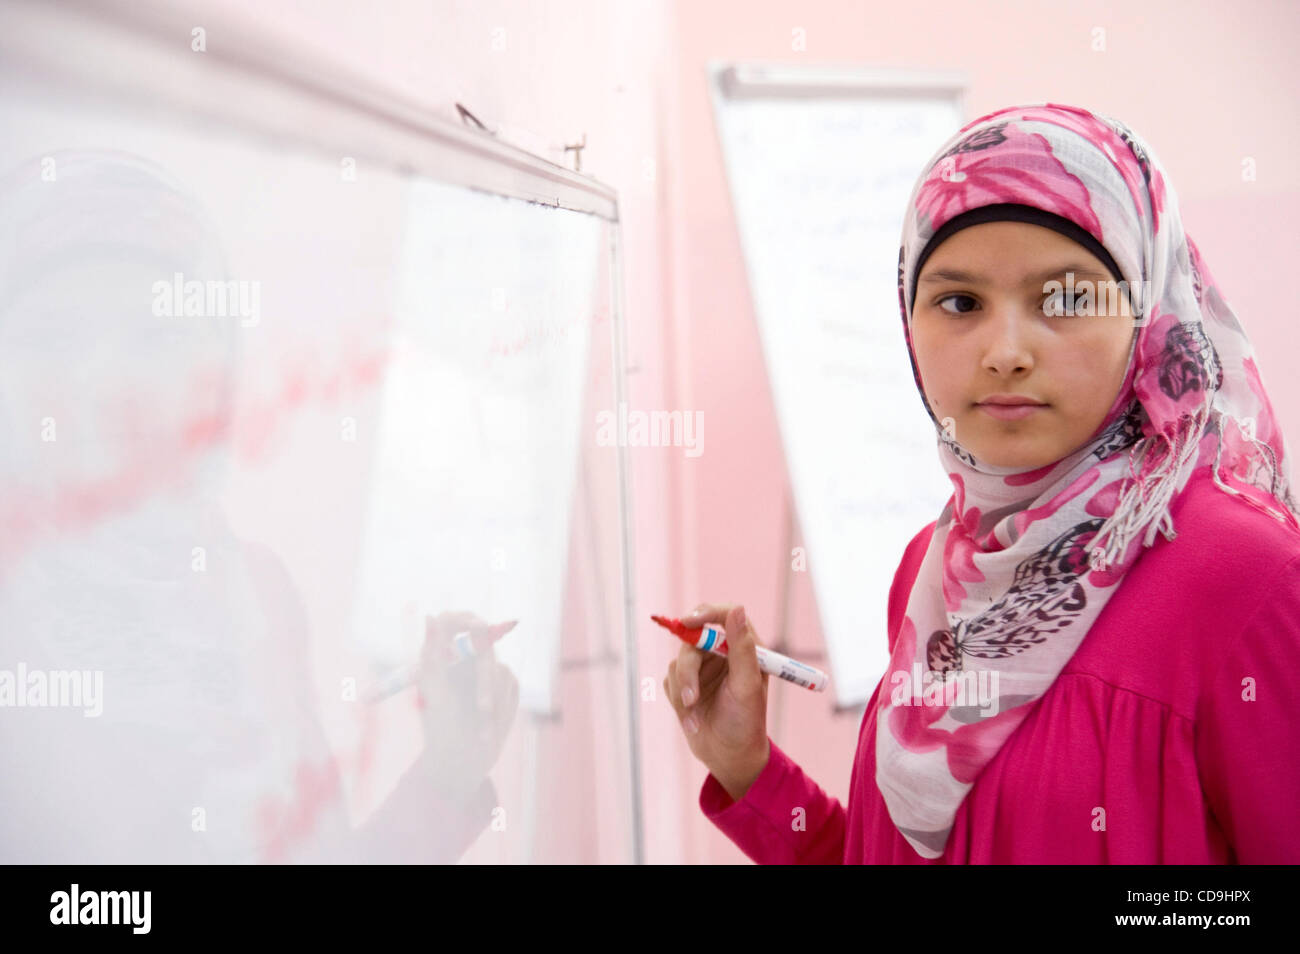 July 12, 2010 - Amman, Jordan - July 12, 2010, Amman, Jordan - A girl completes a lesson on the white board during - Stock Image